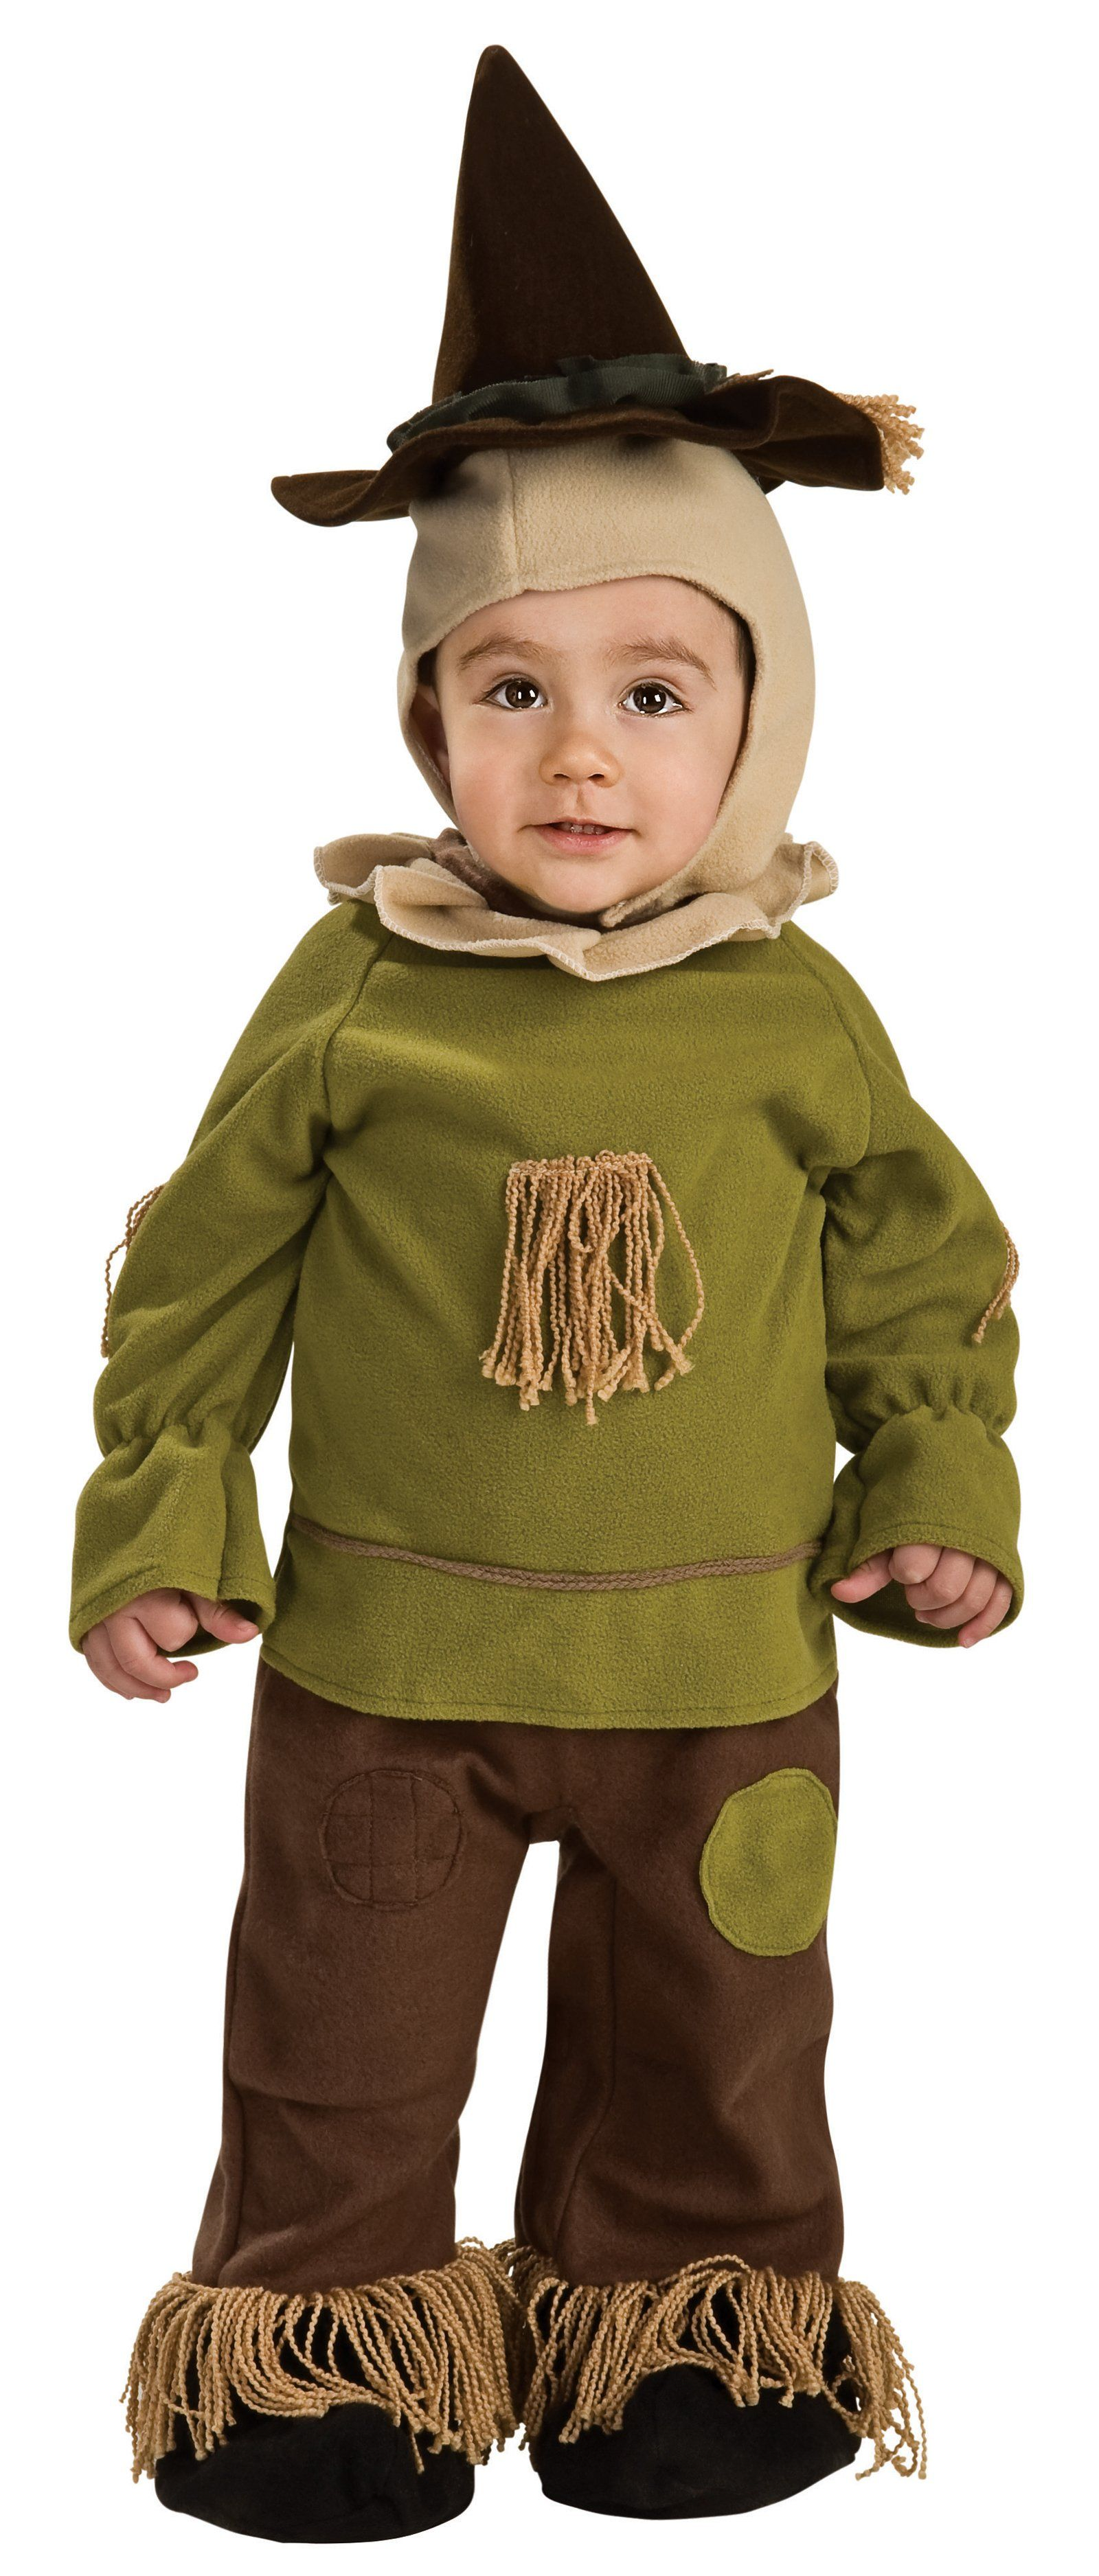 The Wizard of Oz Scarecrow Infant Costume. Toddler Scarecrow CostumeToddler CostumesBaby Halloween ...  sc 1 st  Pinterest & http://www.buycostumes.com/Wizard-of-Oz-Scarecrow-Toddler-Costume ...